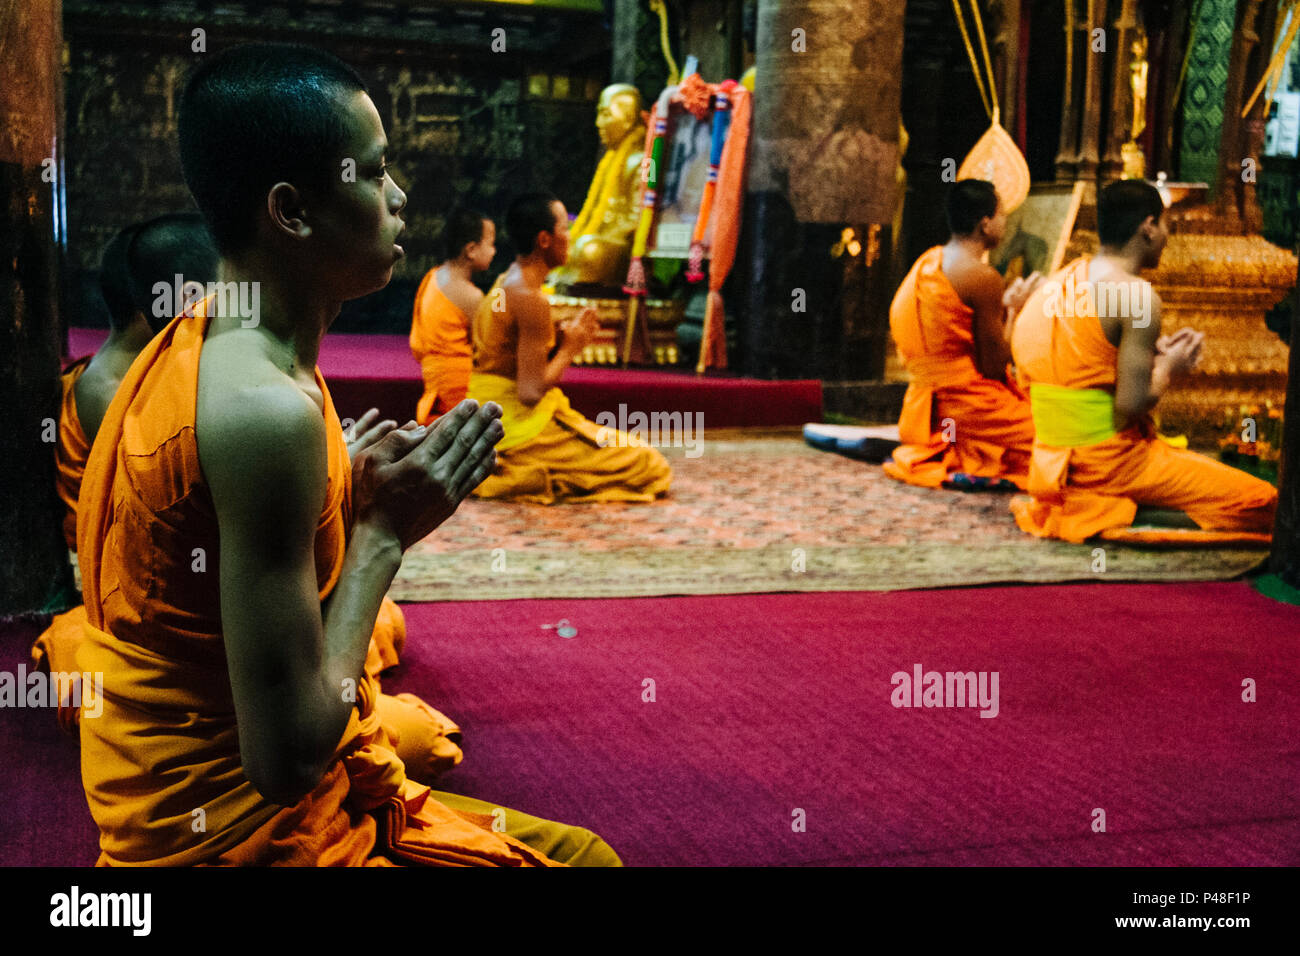 Luang Prabang or Louangphabang, Laos, Southeast Asia : Laotian Buddhist monks pray inside Wat Mai Suwannaphumaham, or Wat Mai, built in 1750 and the l - Stock Image